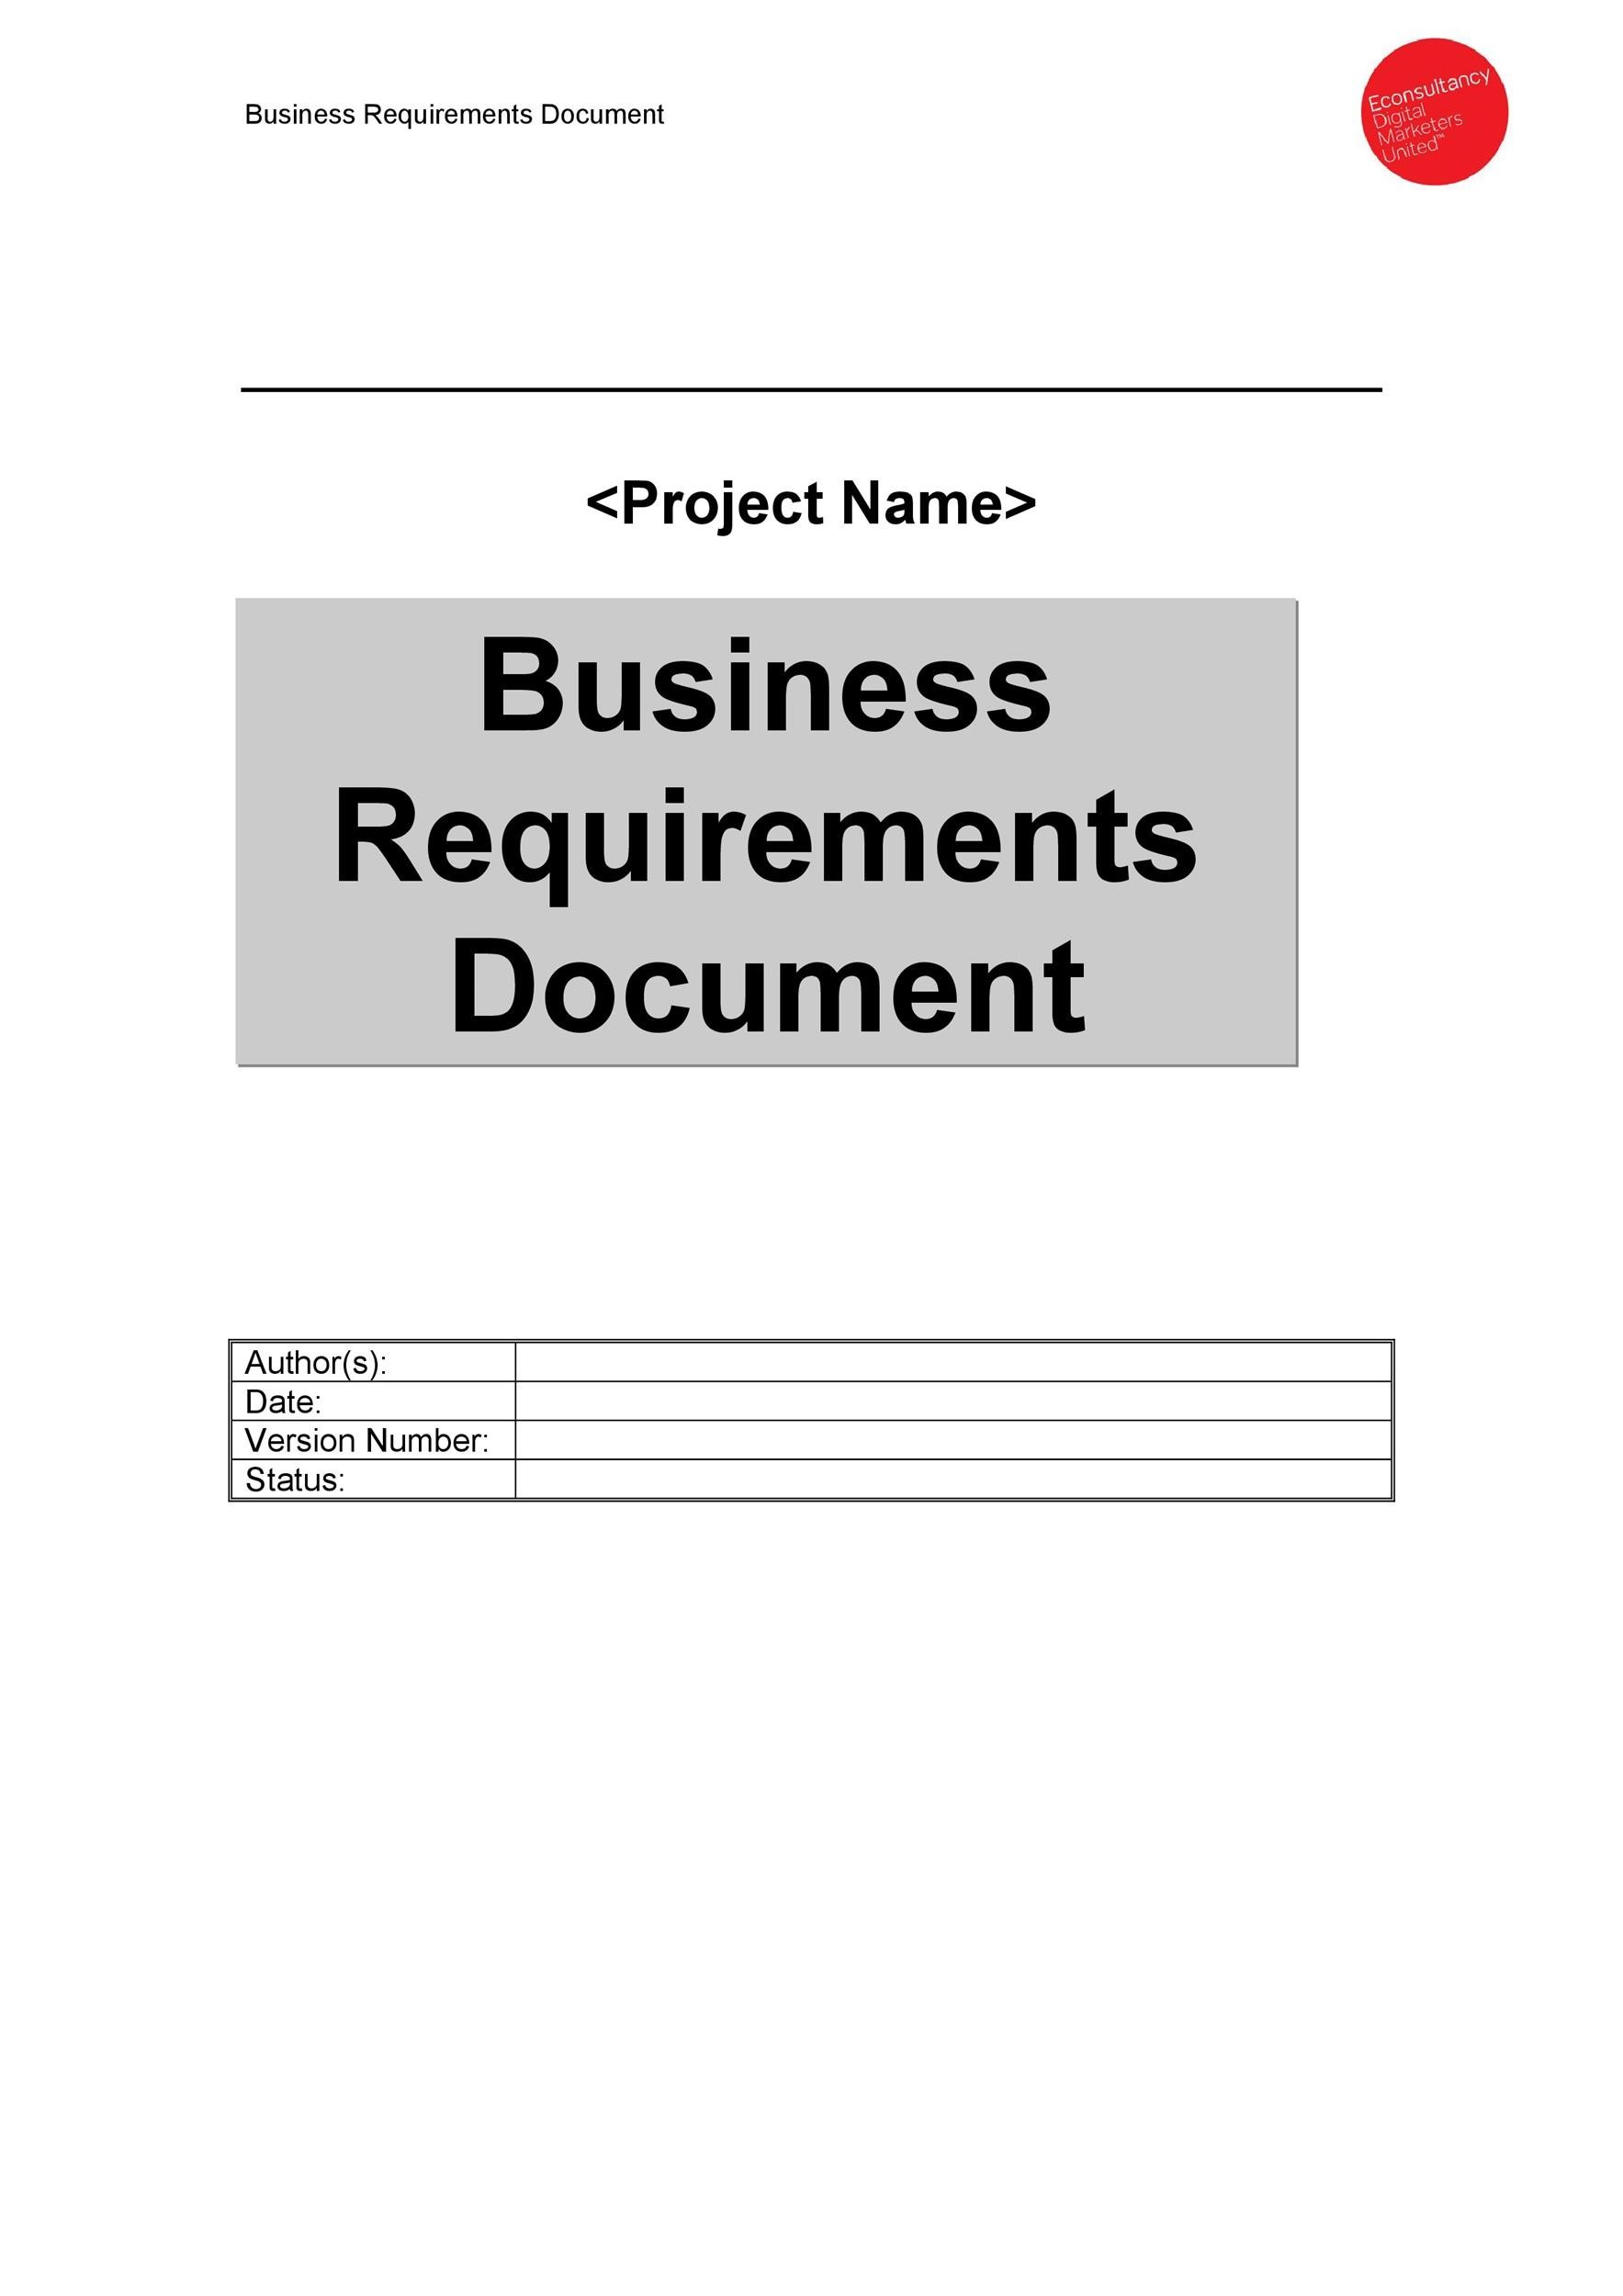 40 simple business requirements document templates template lab free business requirements document template 19 fbccfo